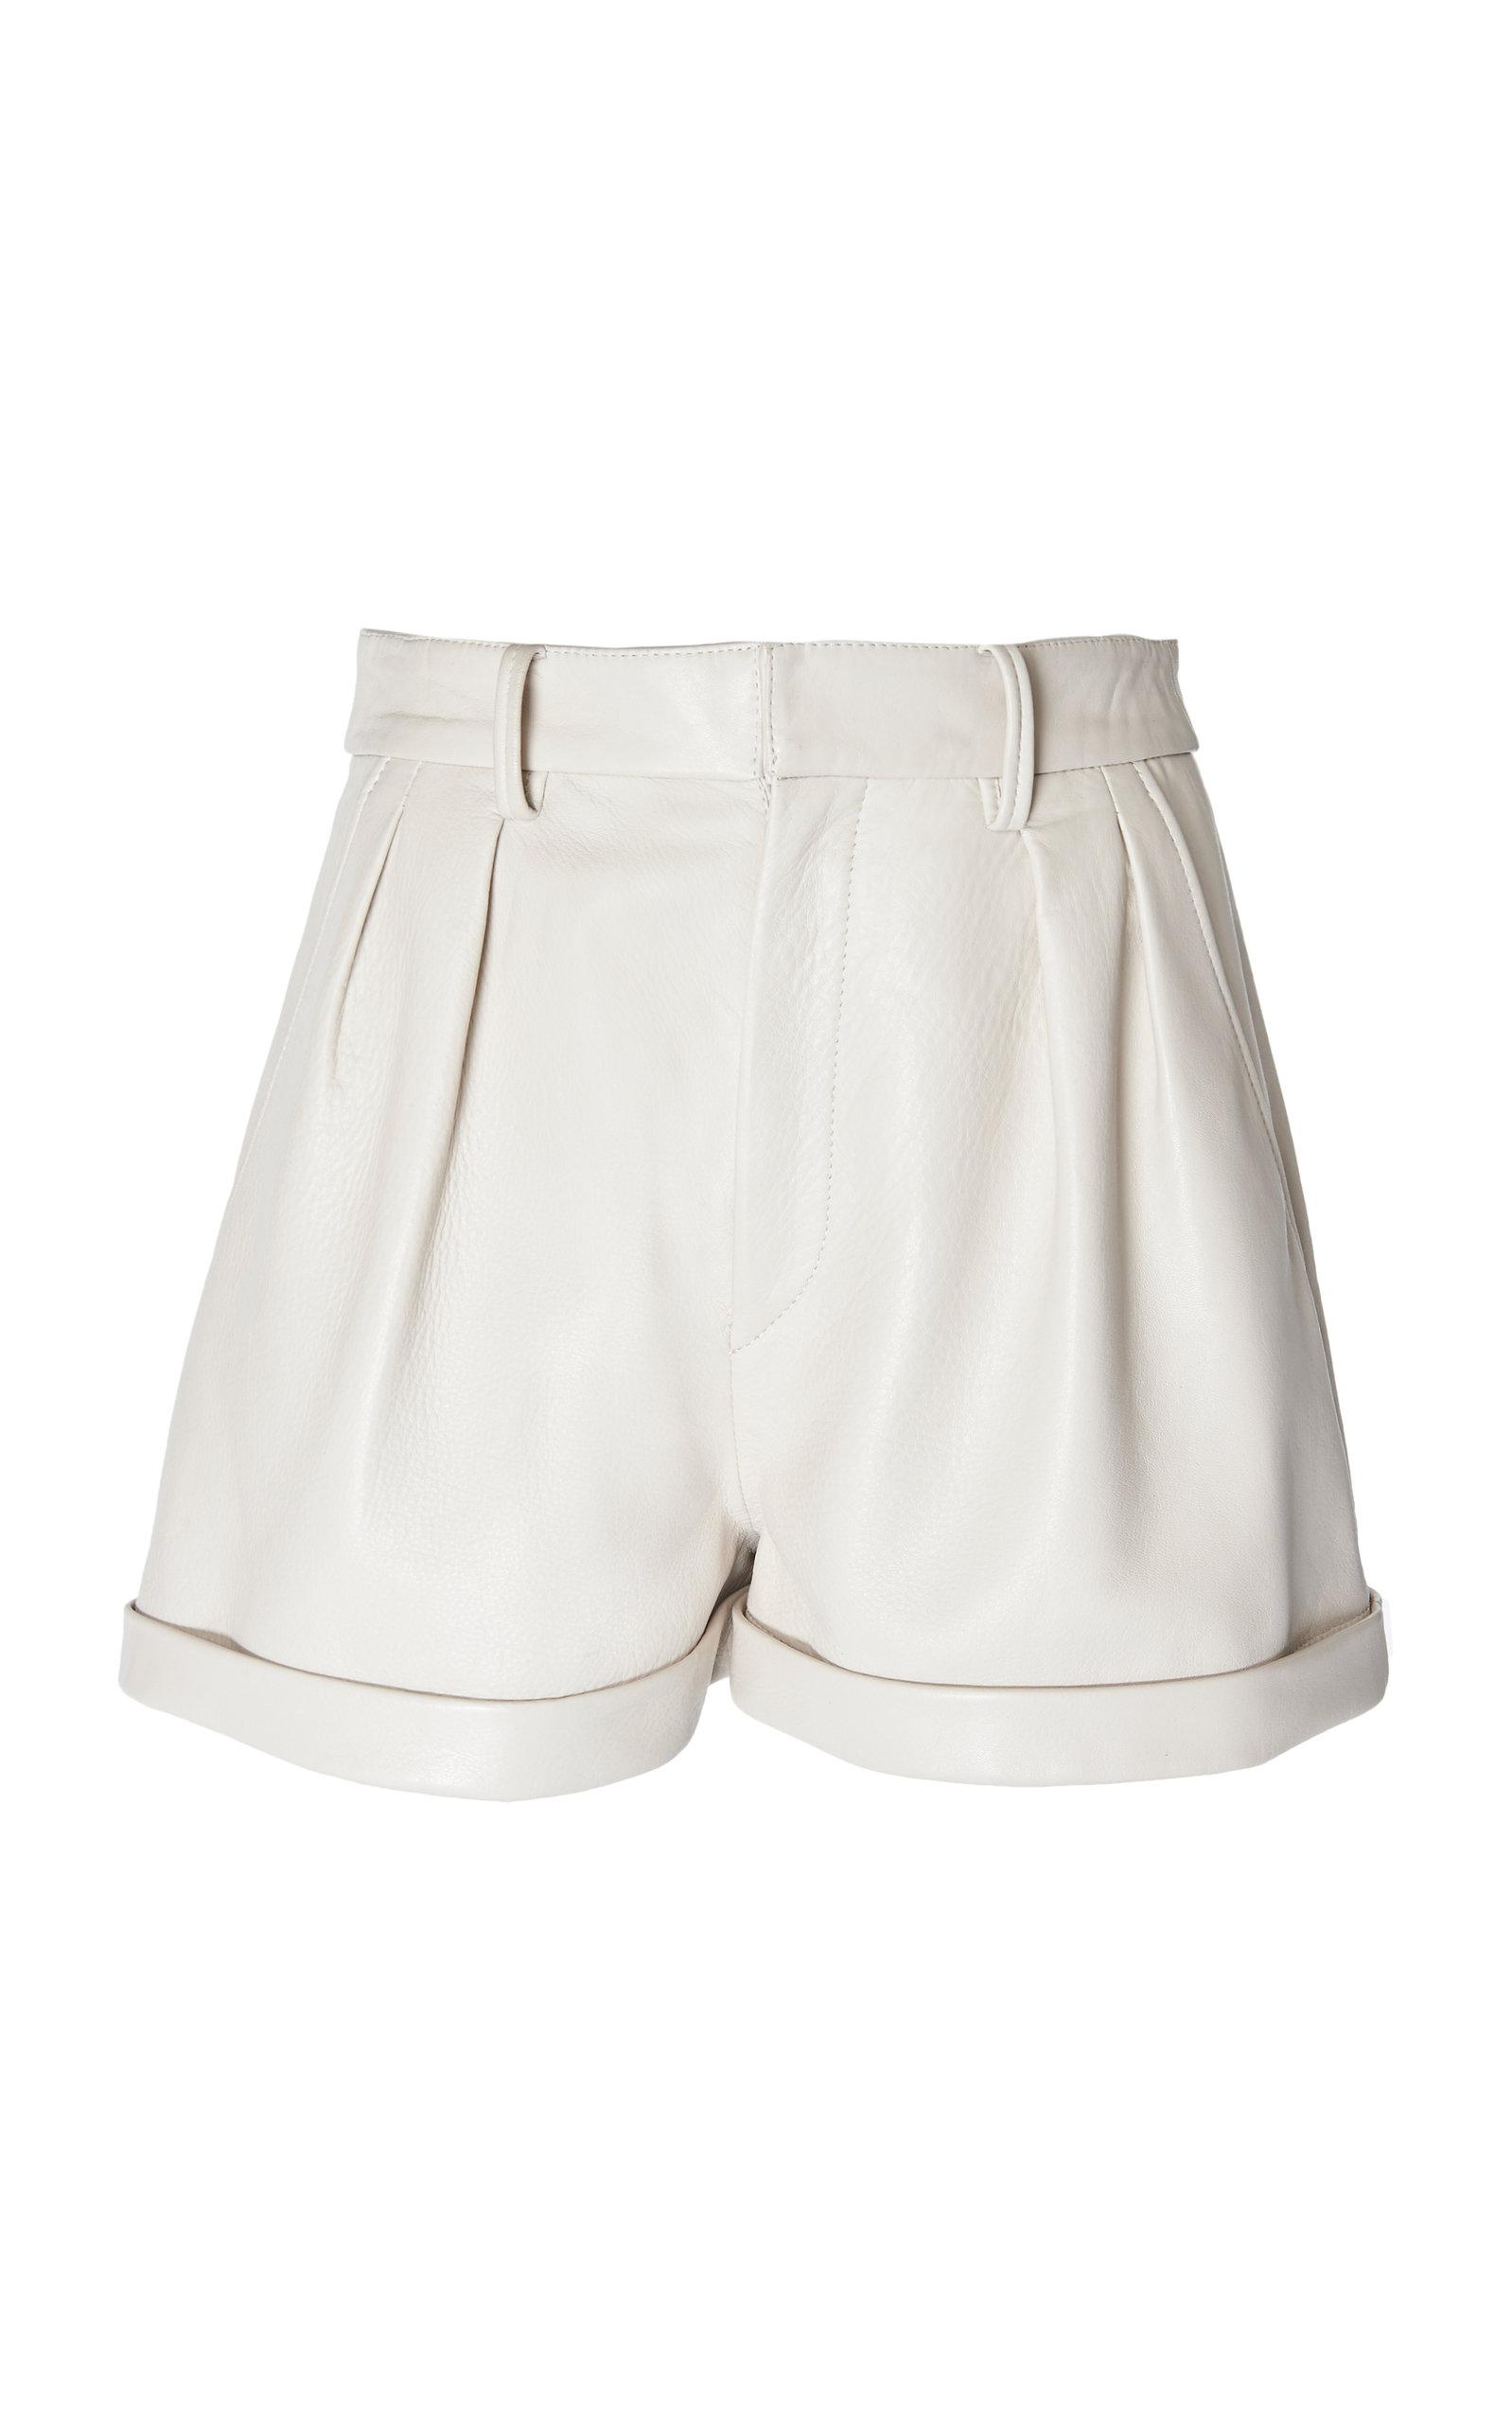 29e4191db2 Isabel Marant Fabot Leather High Waisted Cuffed Shorts in White - Lyst